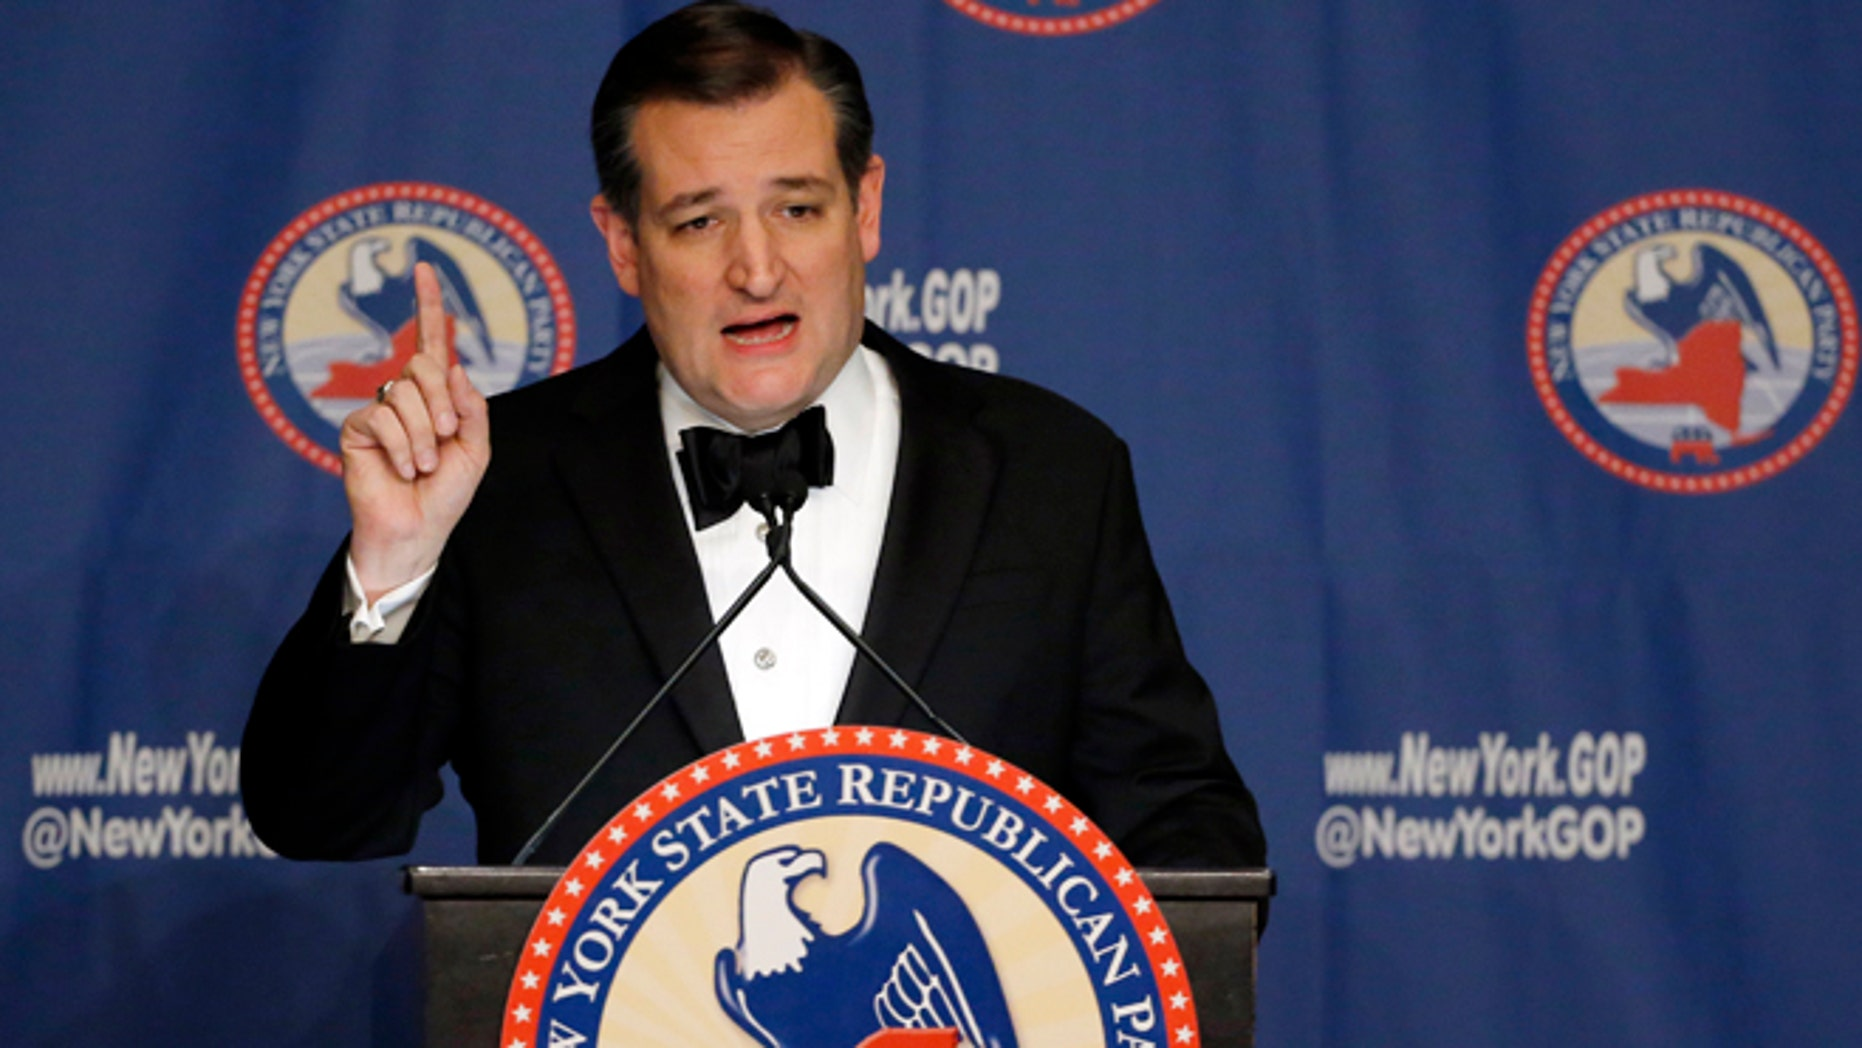 Sen. Ted Cruz at the New York Republican State Committee Annual Gala Thursday, April 14, 2016, in New York.